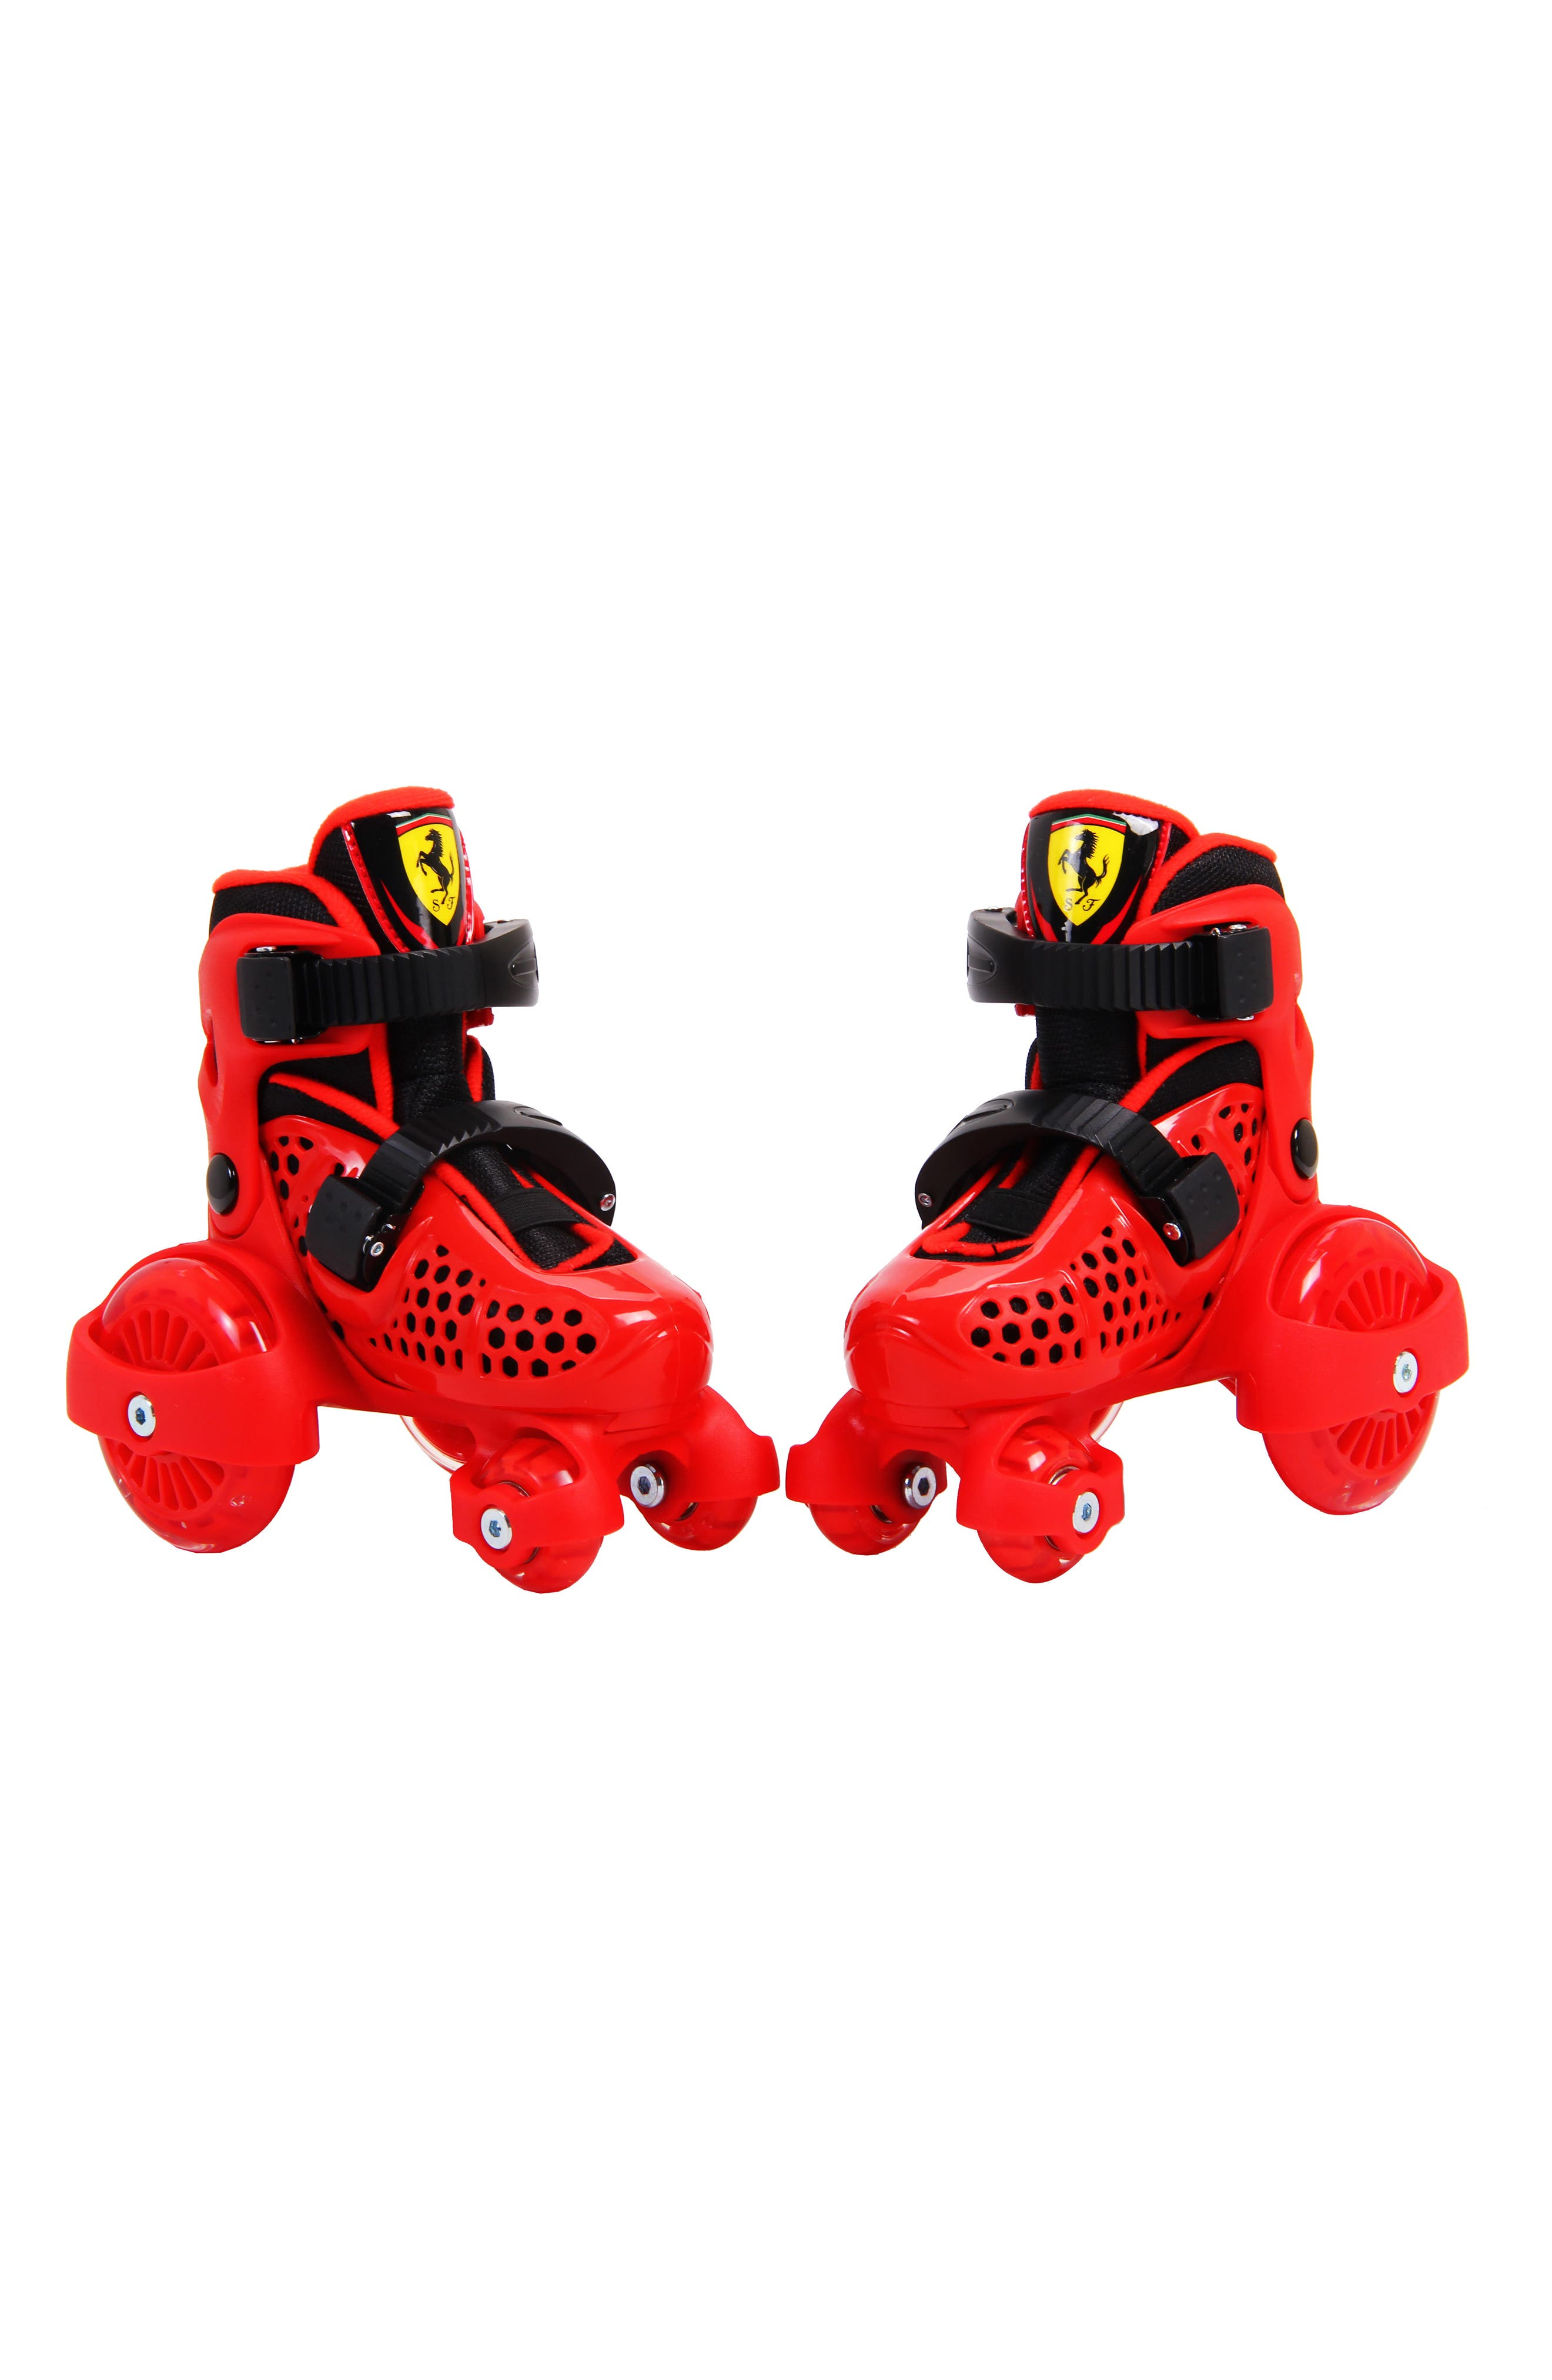 My First Skate Rollerskate & Protective Gear Set,                             Alternate thumbnail 2, color,                             Red